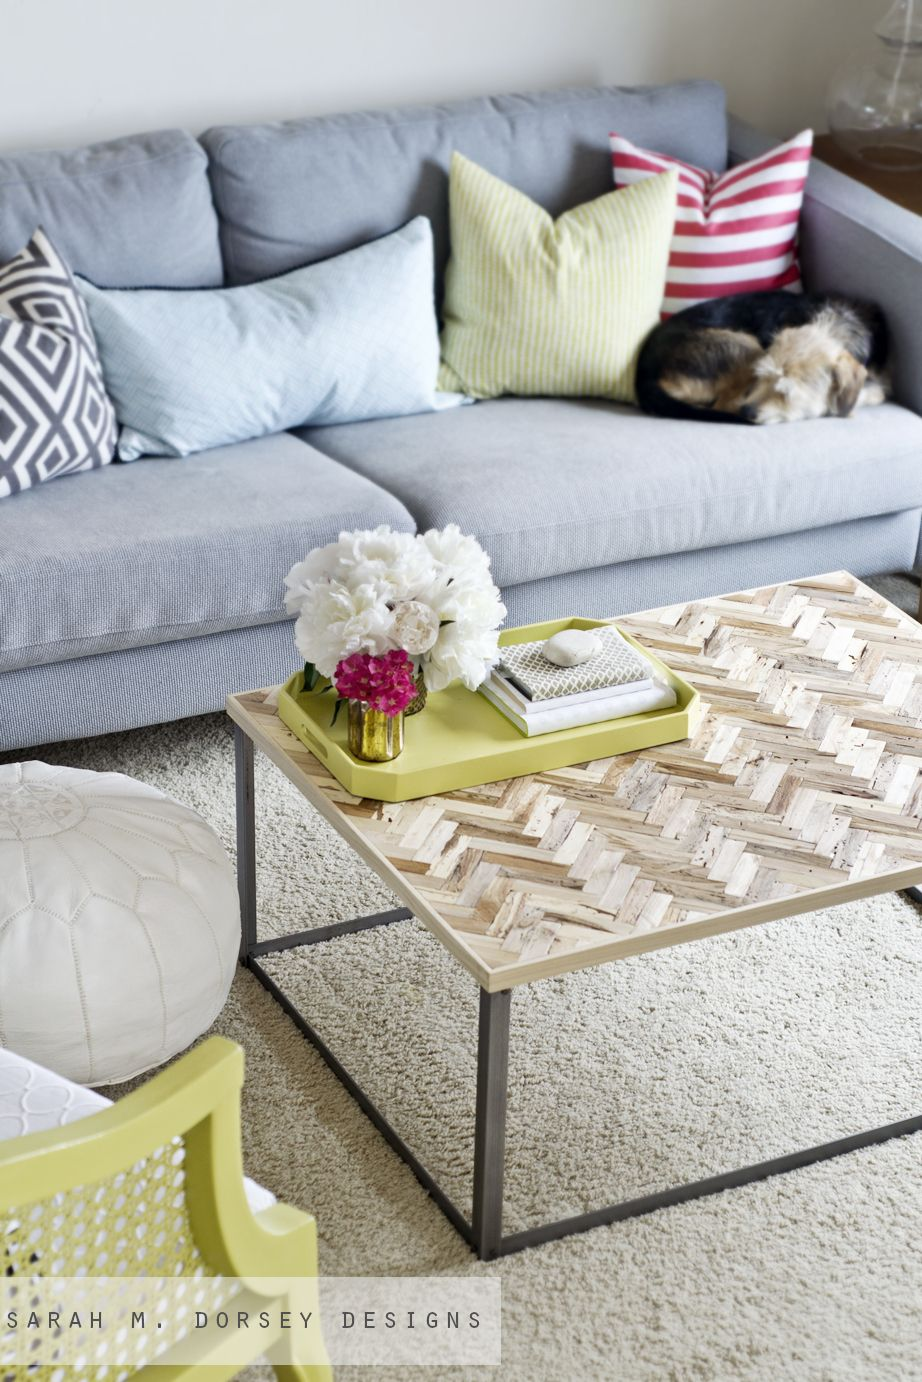 Sarah M. Dorsey Designs: Herringbone Driftwood Table Plus Detailed  Directions On How To Make; Good Project For Scrap Wood